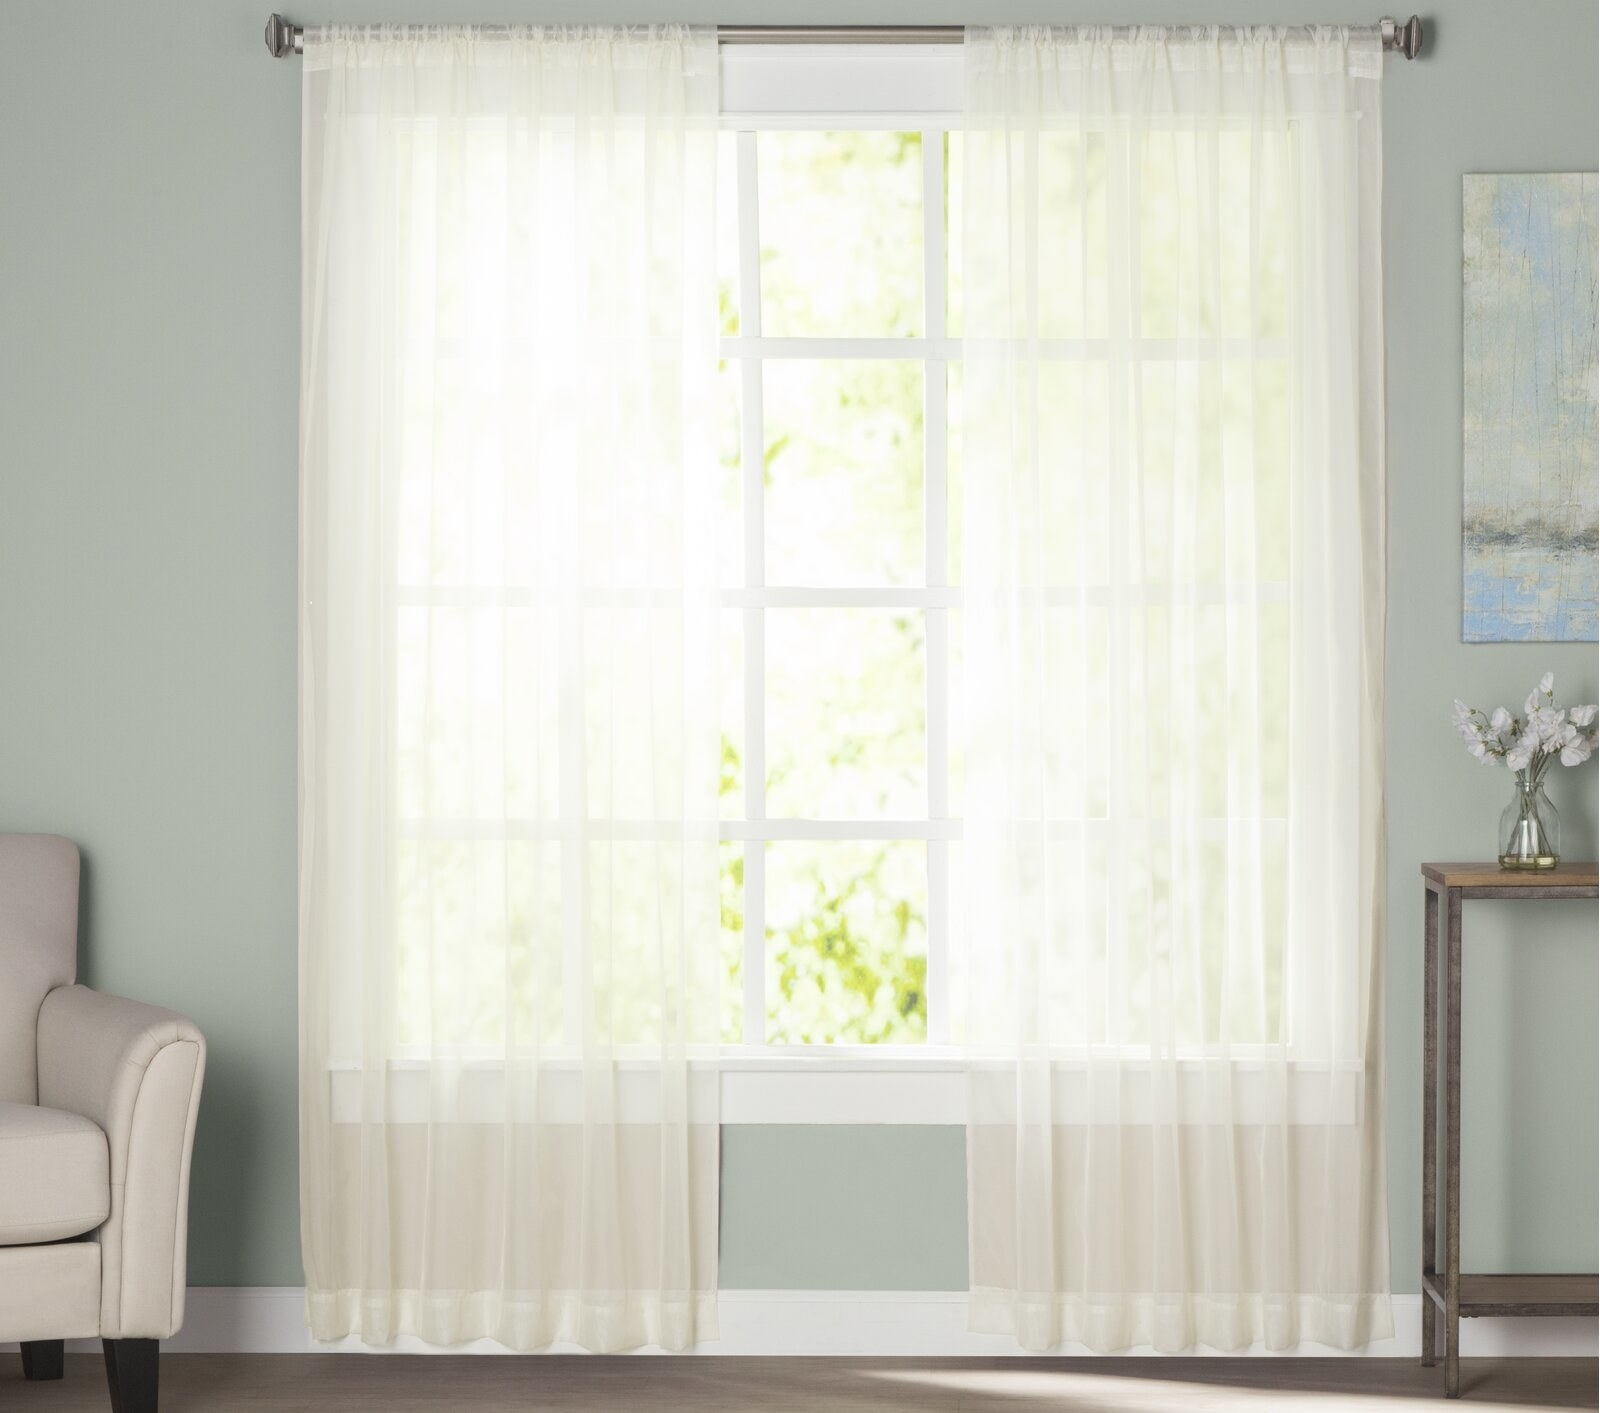 panel of sheer curtains letting light into the room